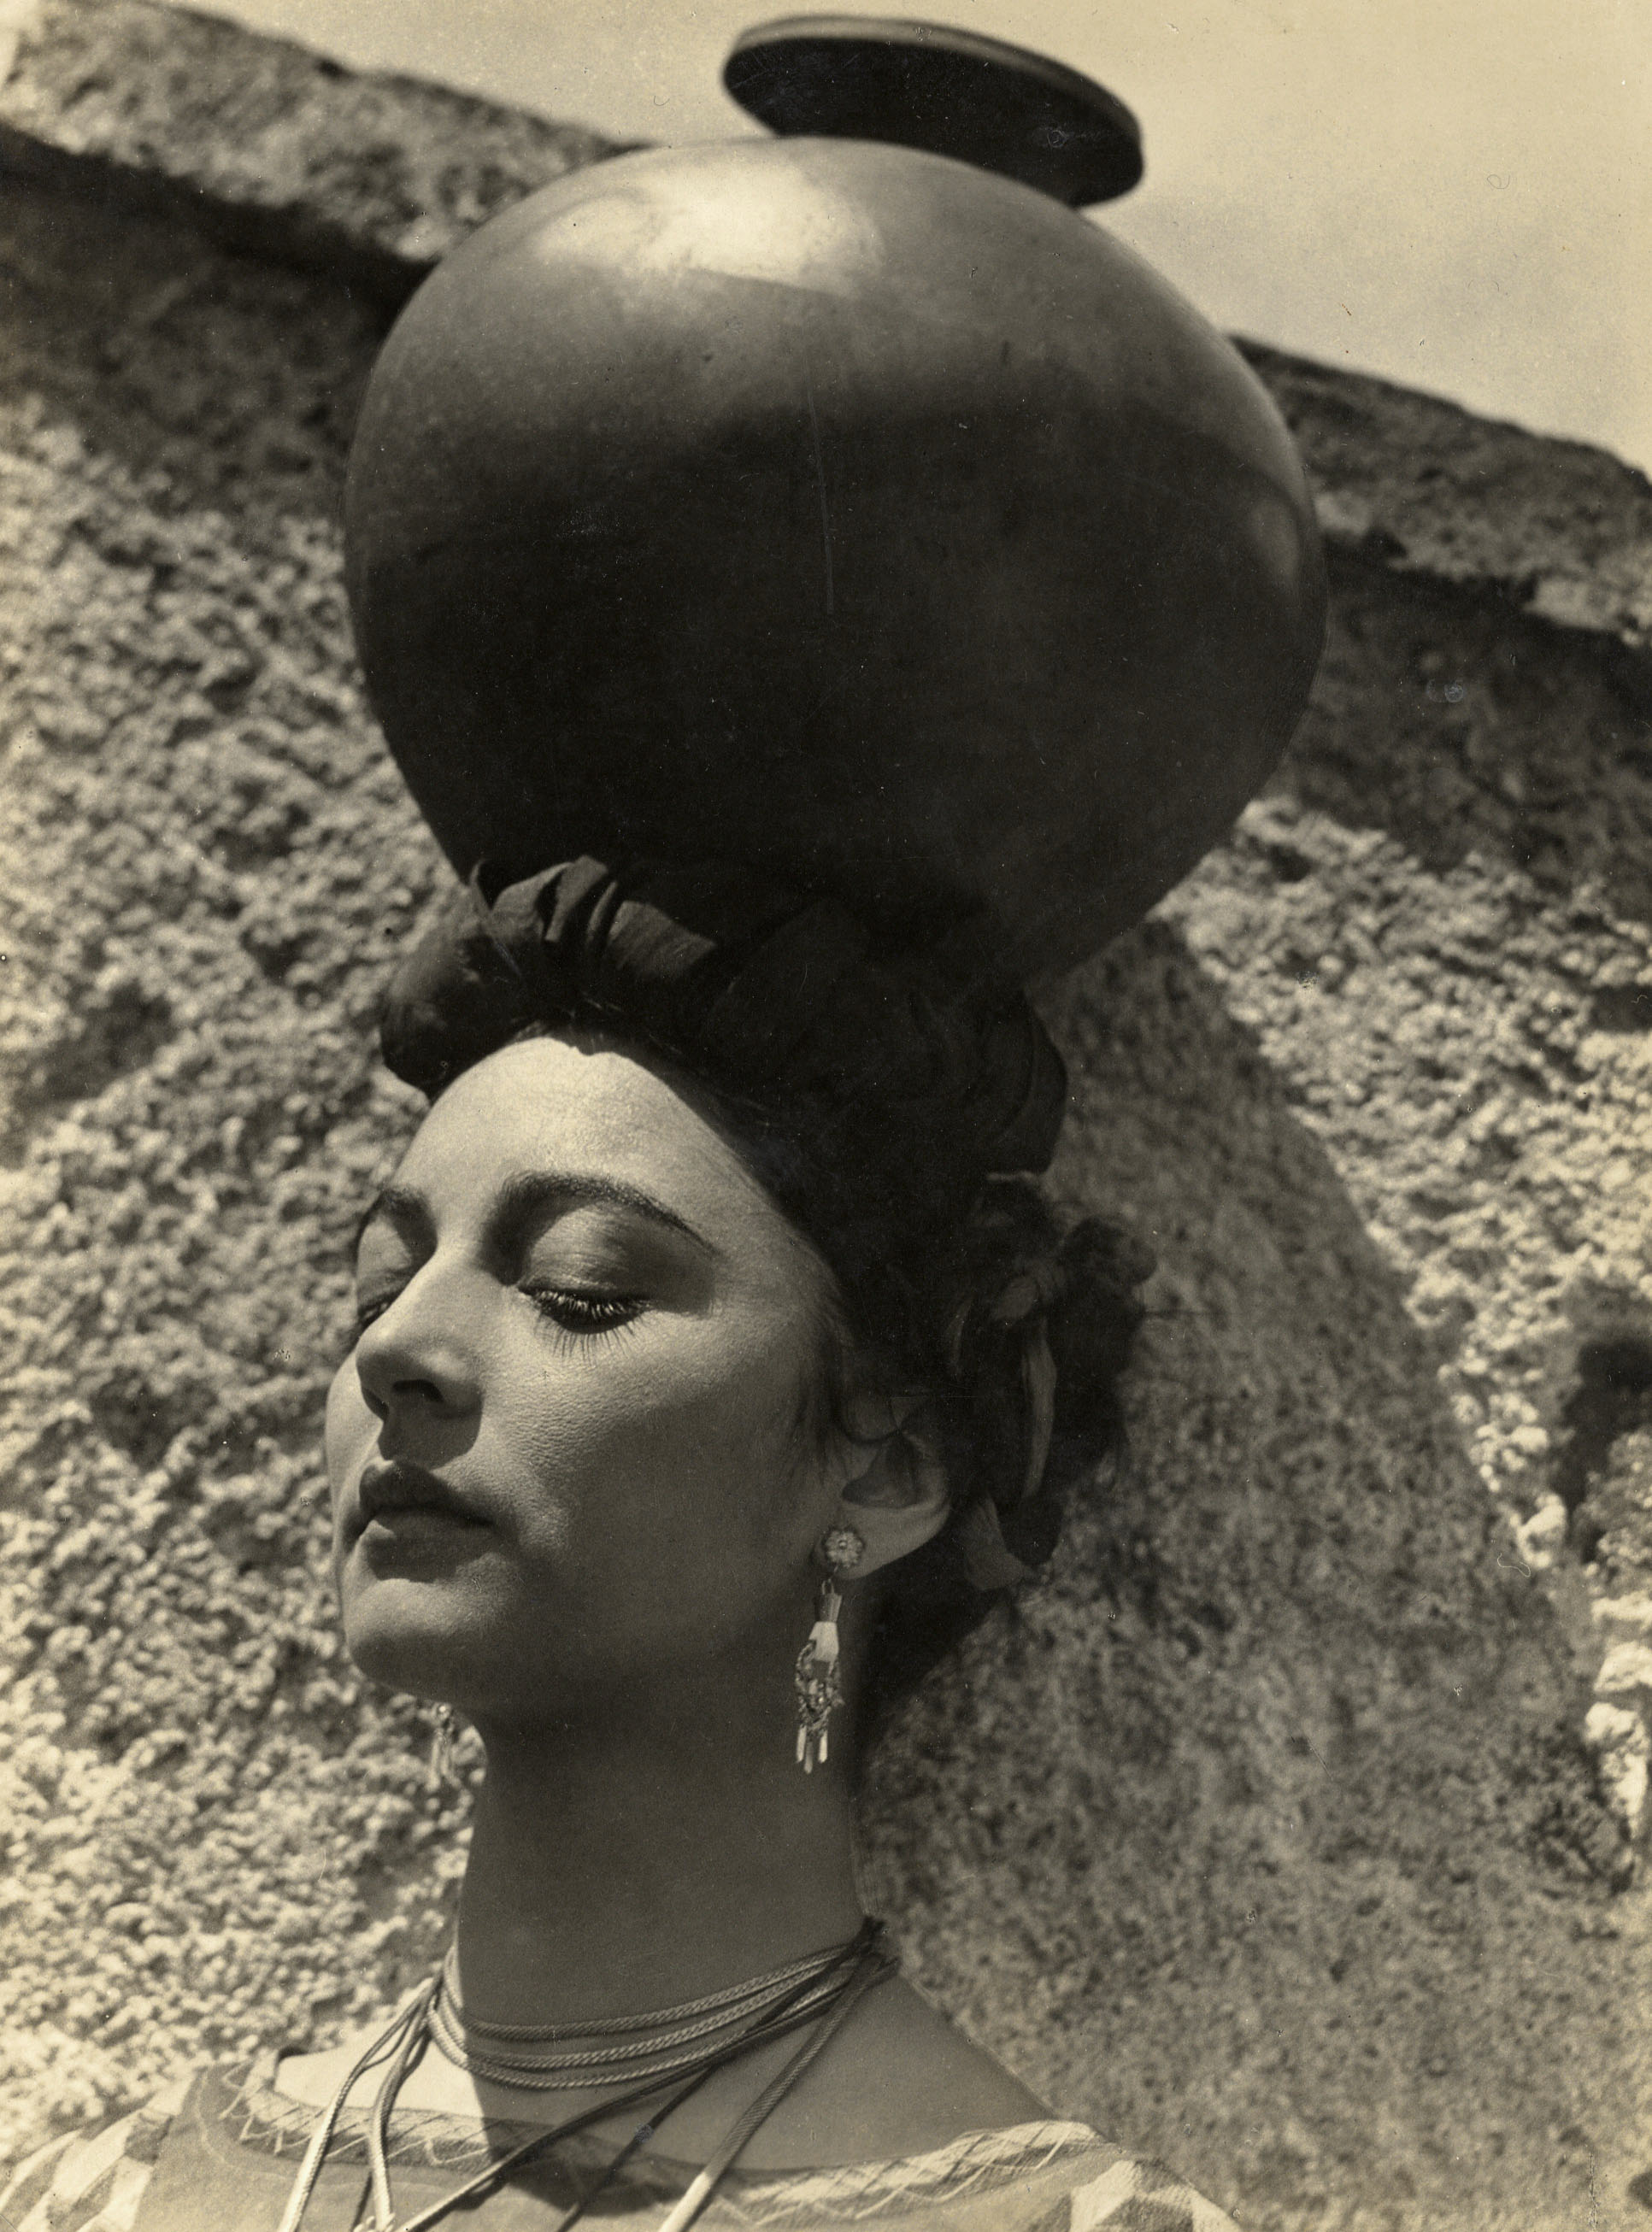 A woman with a clay pot on her head against a stucco wall.